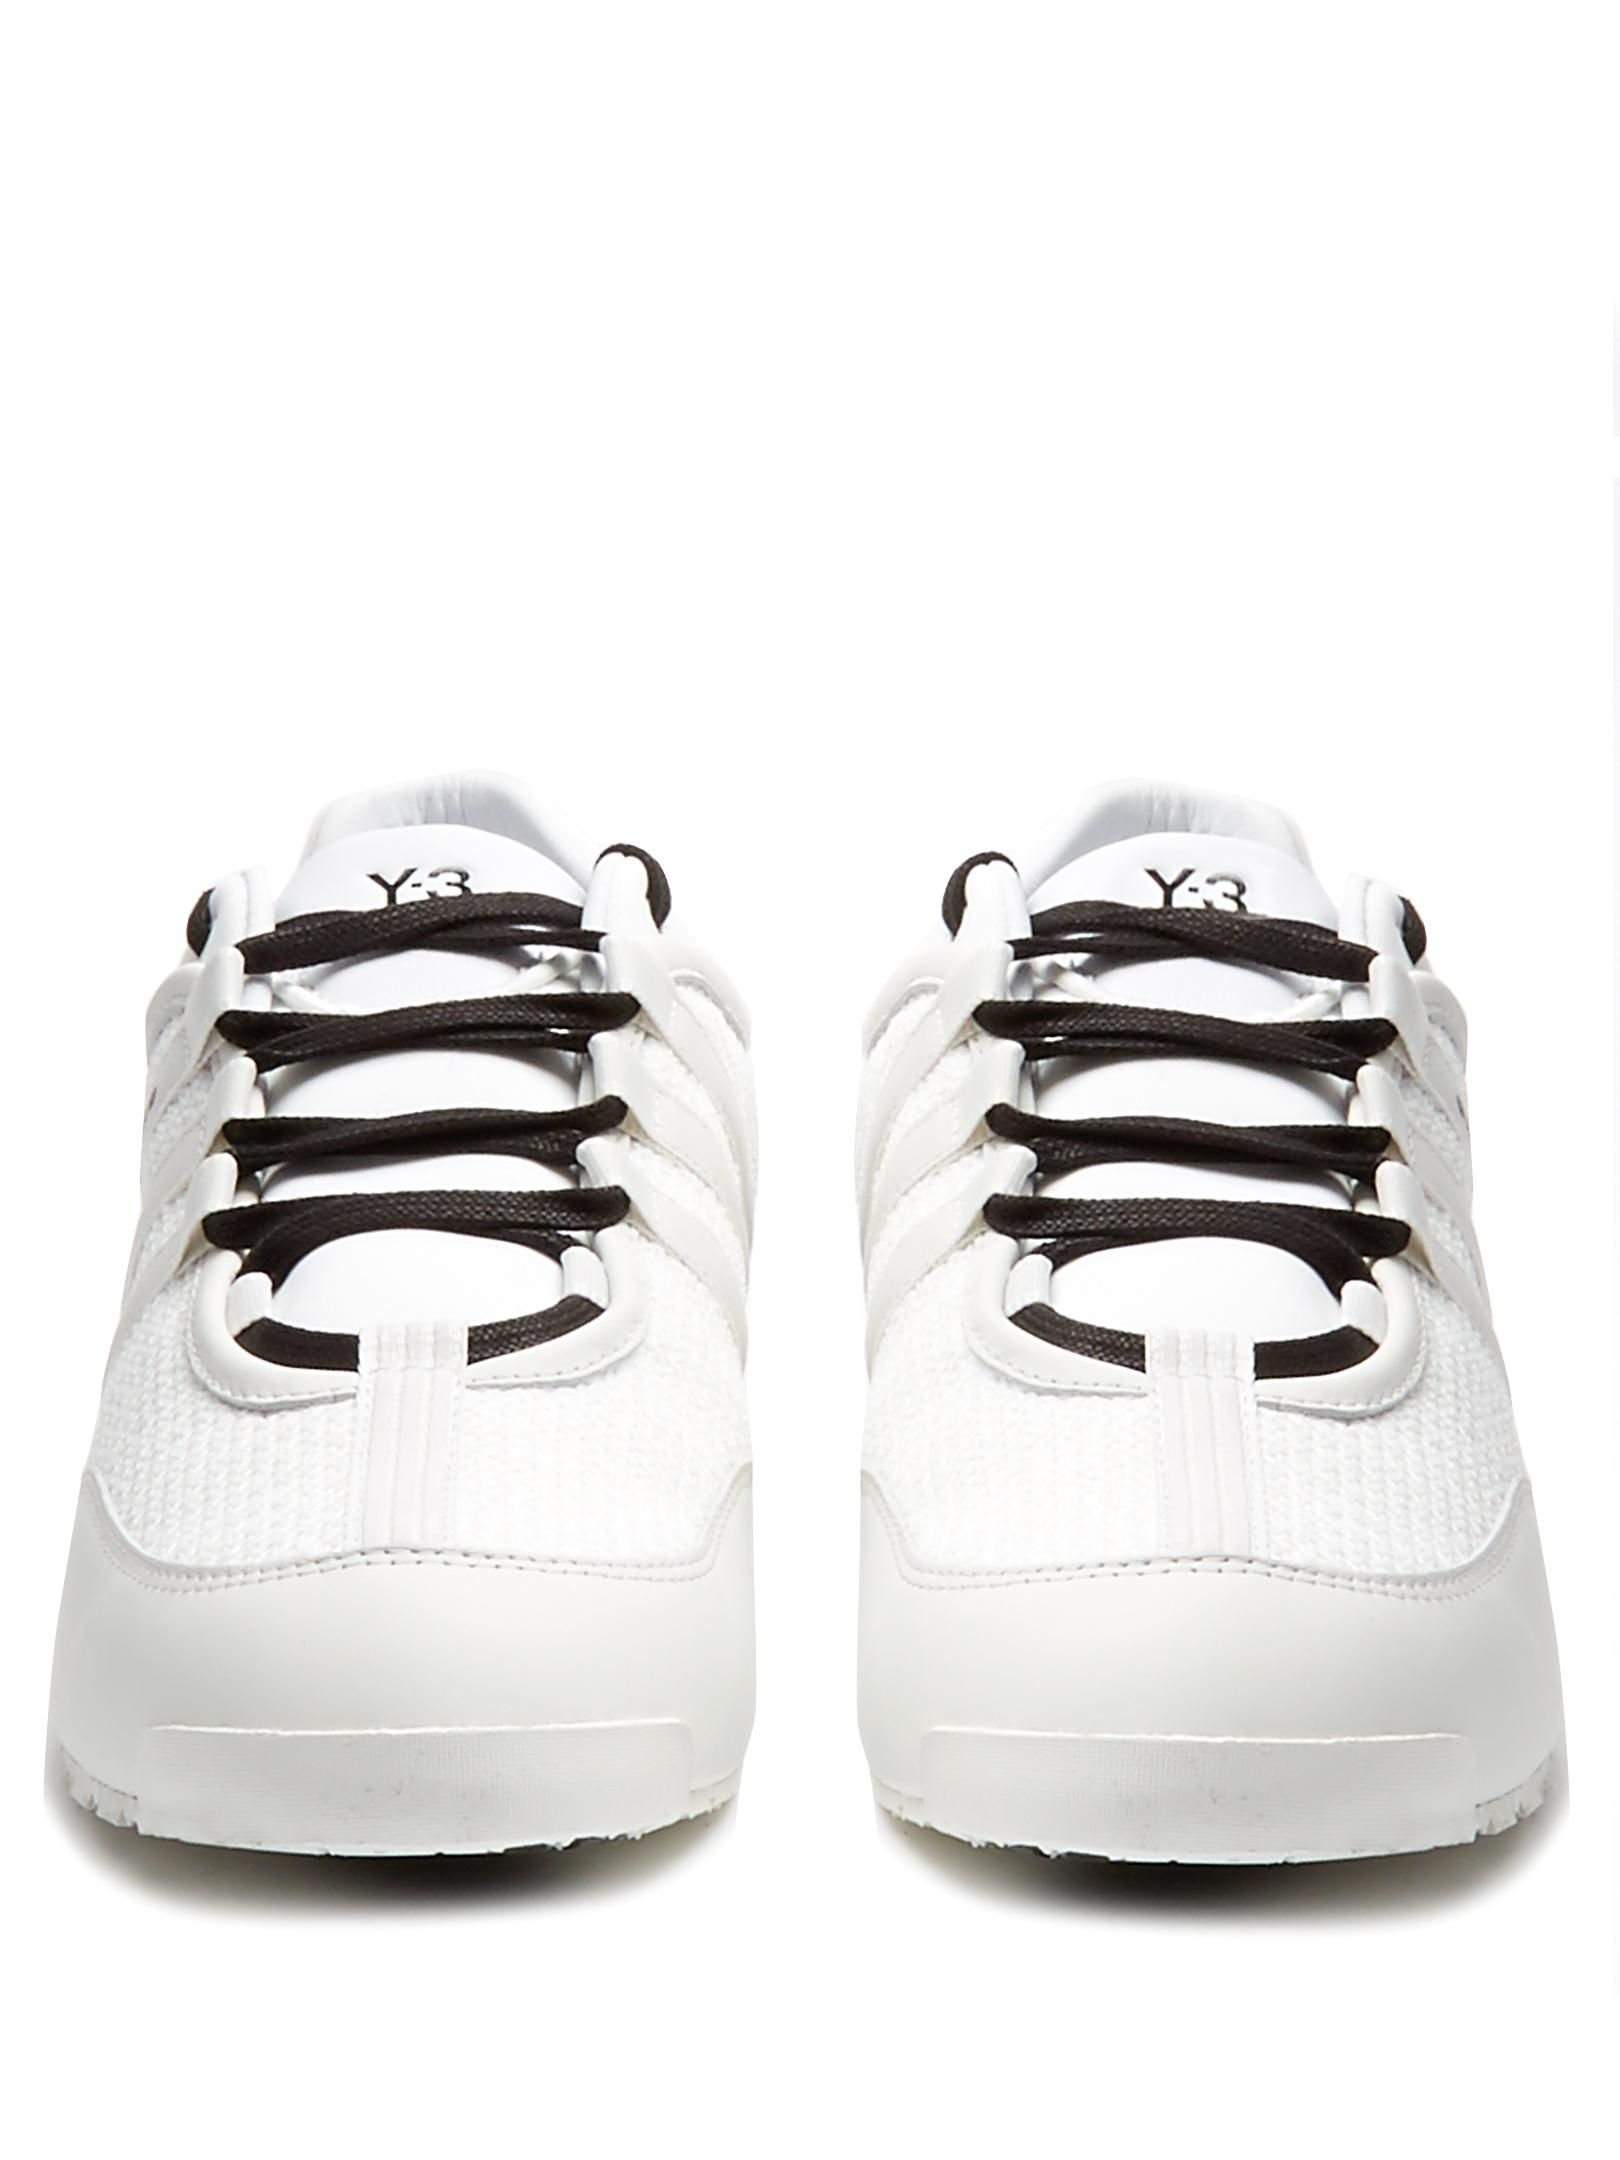 Y-3 Leather Boxing Low-top Trainers in White for Men